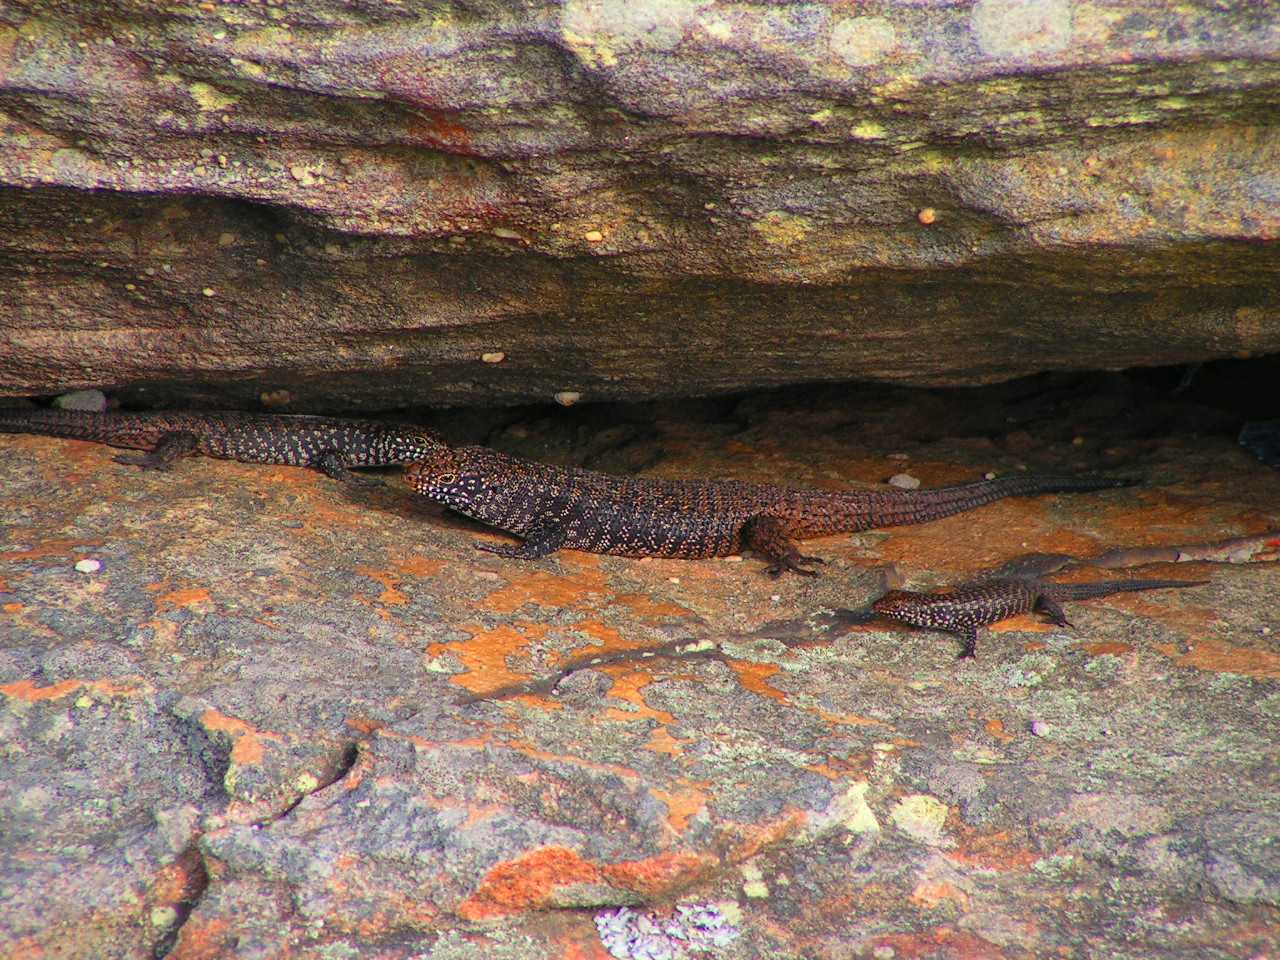 Cunningham's Skinks Protect Their Offspring Against Predators, Study Says